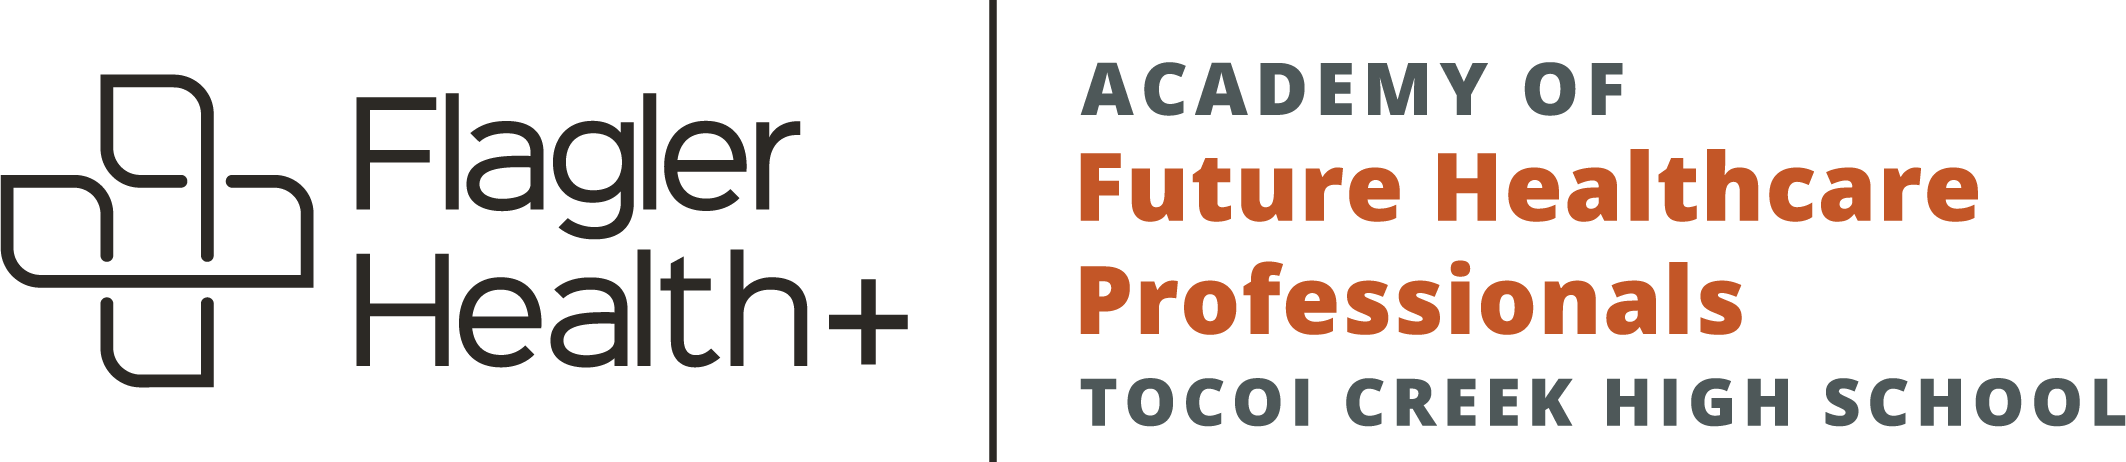 Flagler Health+ Academy of Future Healthcare Professionals